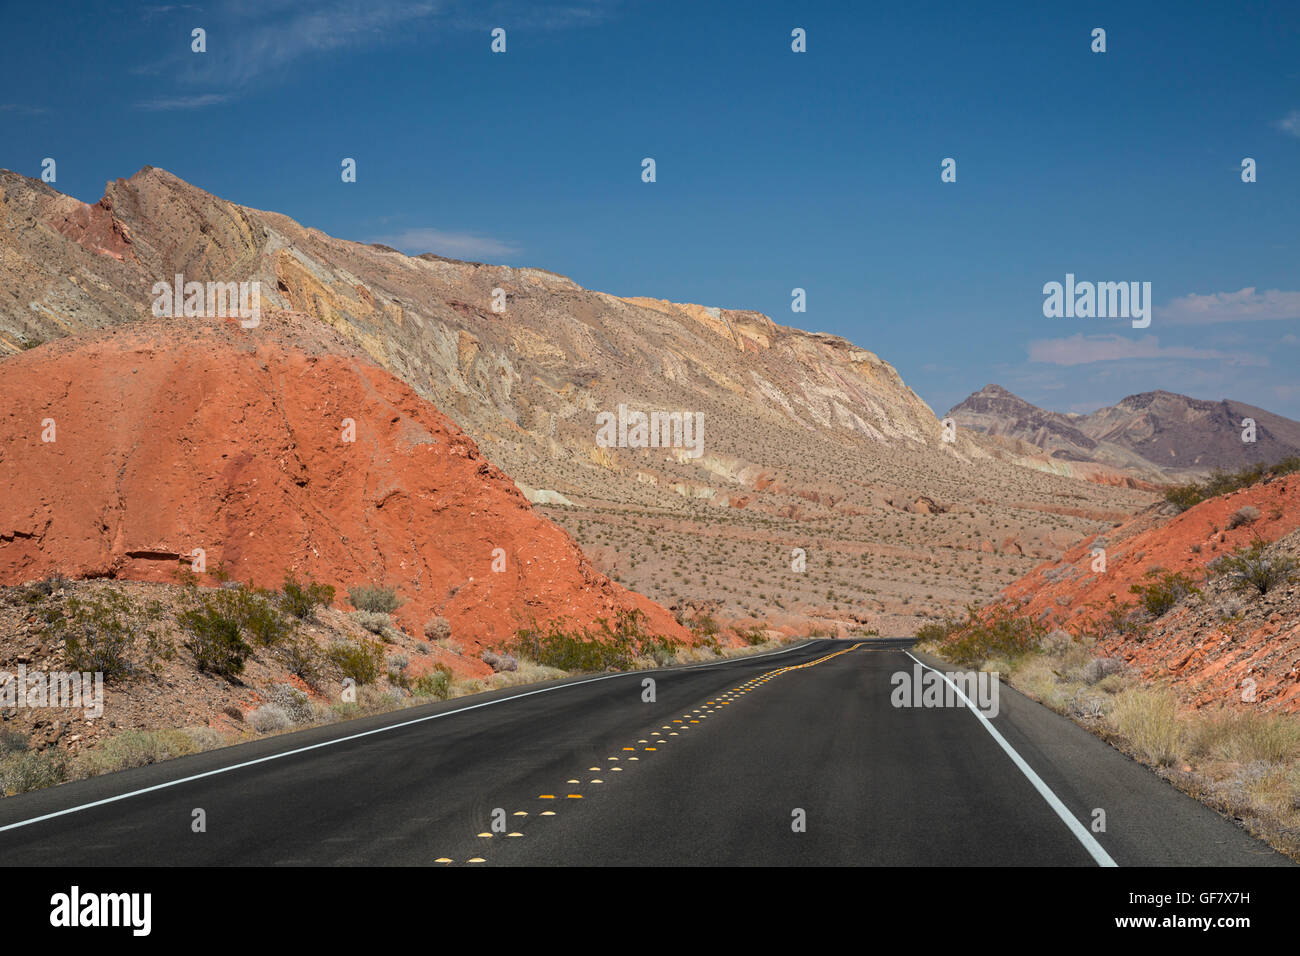 Las Vegas, Nevada - The Northshore Road in Lake Mead National Recreation Area. - Stock Image